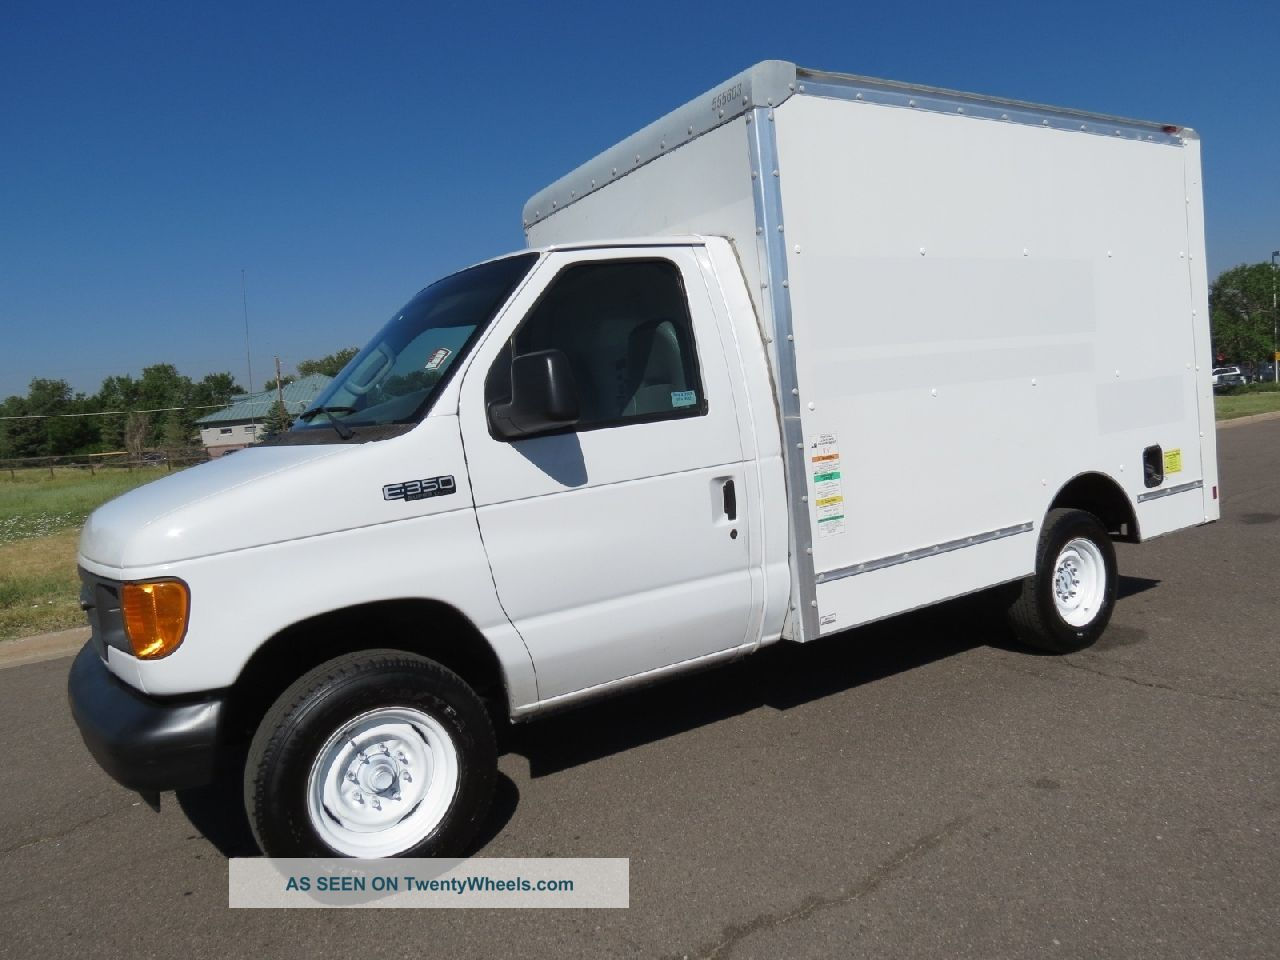 hight resolution of delivery trucks wiring wiring diagram 2005 ford e350 service utility work van delivery box truckdelivery trucks